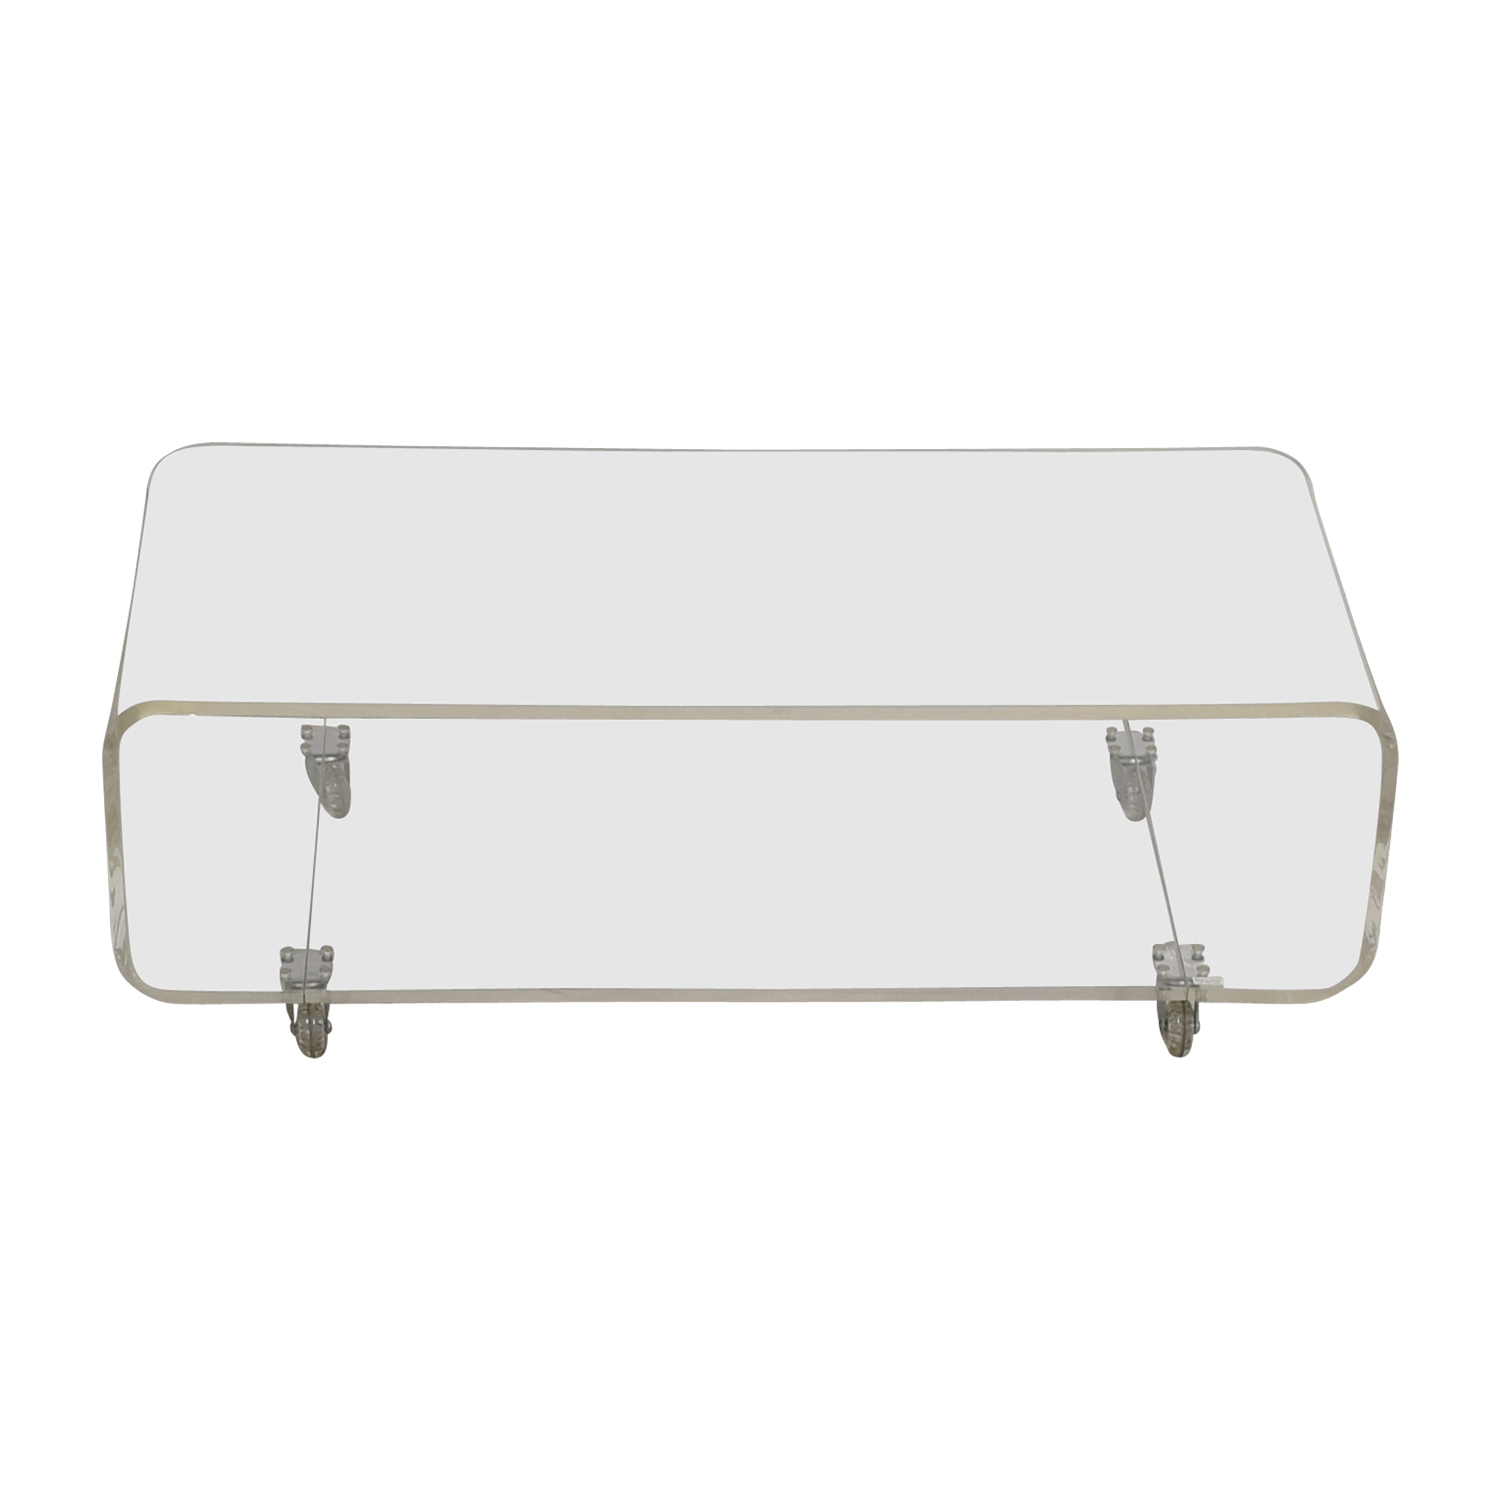 shop CB2 Peekaboo Acrylic Media Console CB2 Storage